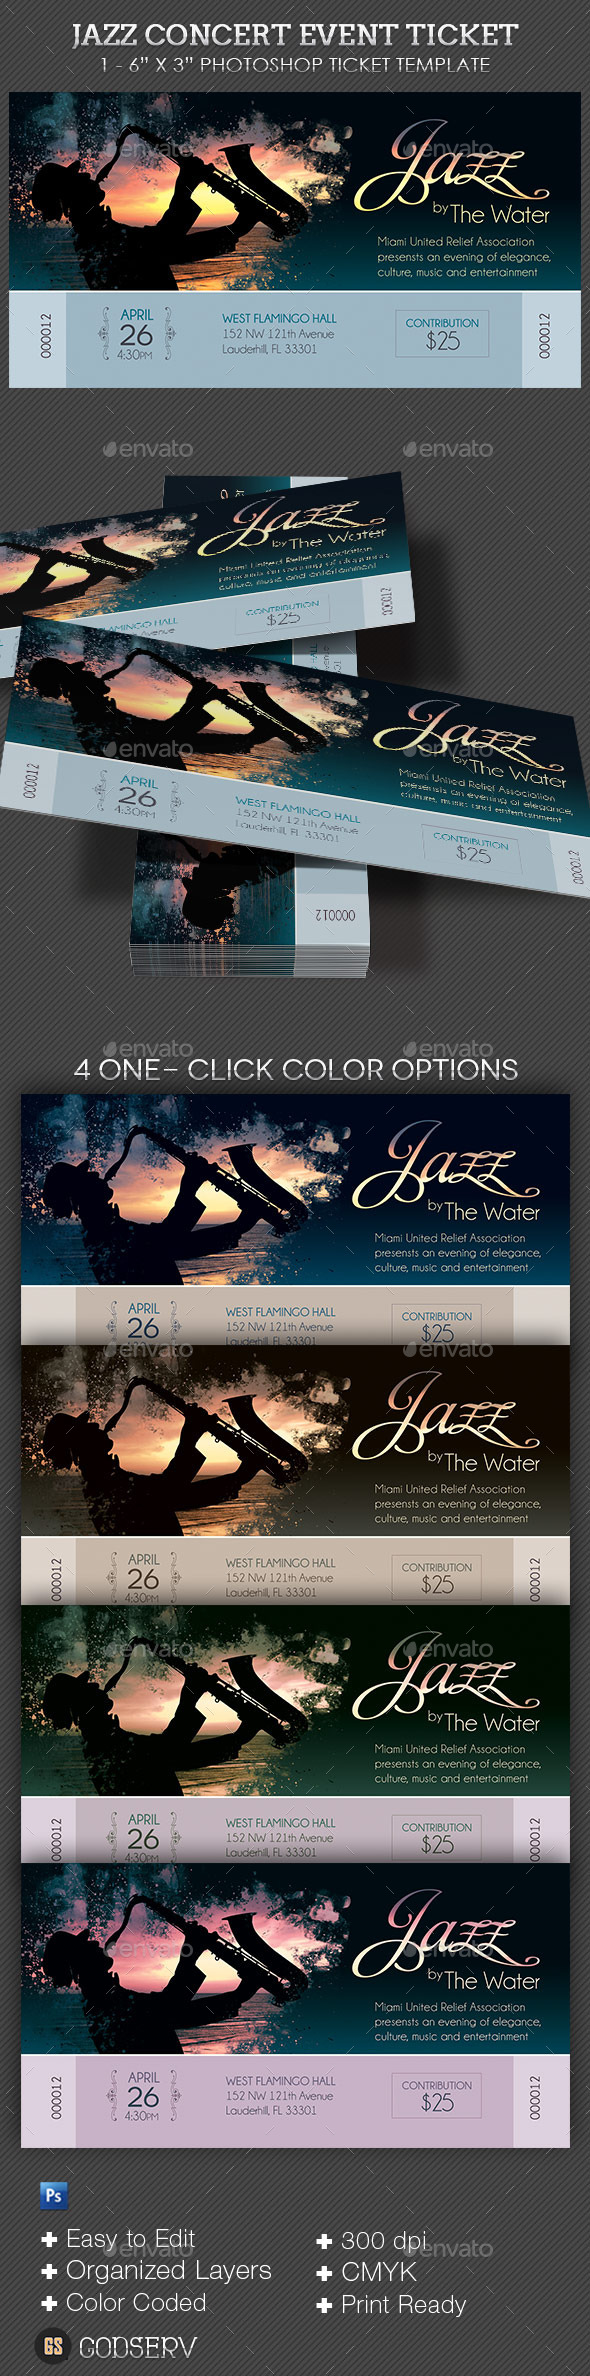 Jazz Concert Event Ticket - Miscellaneous Print Templates